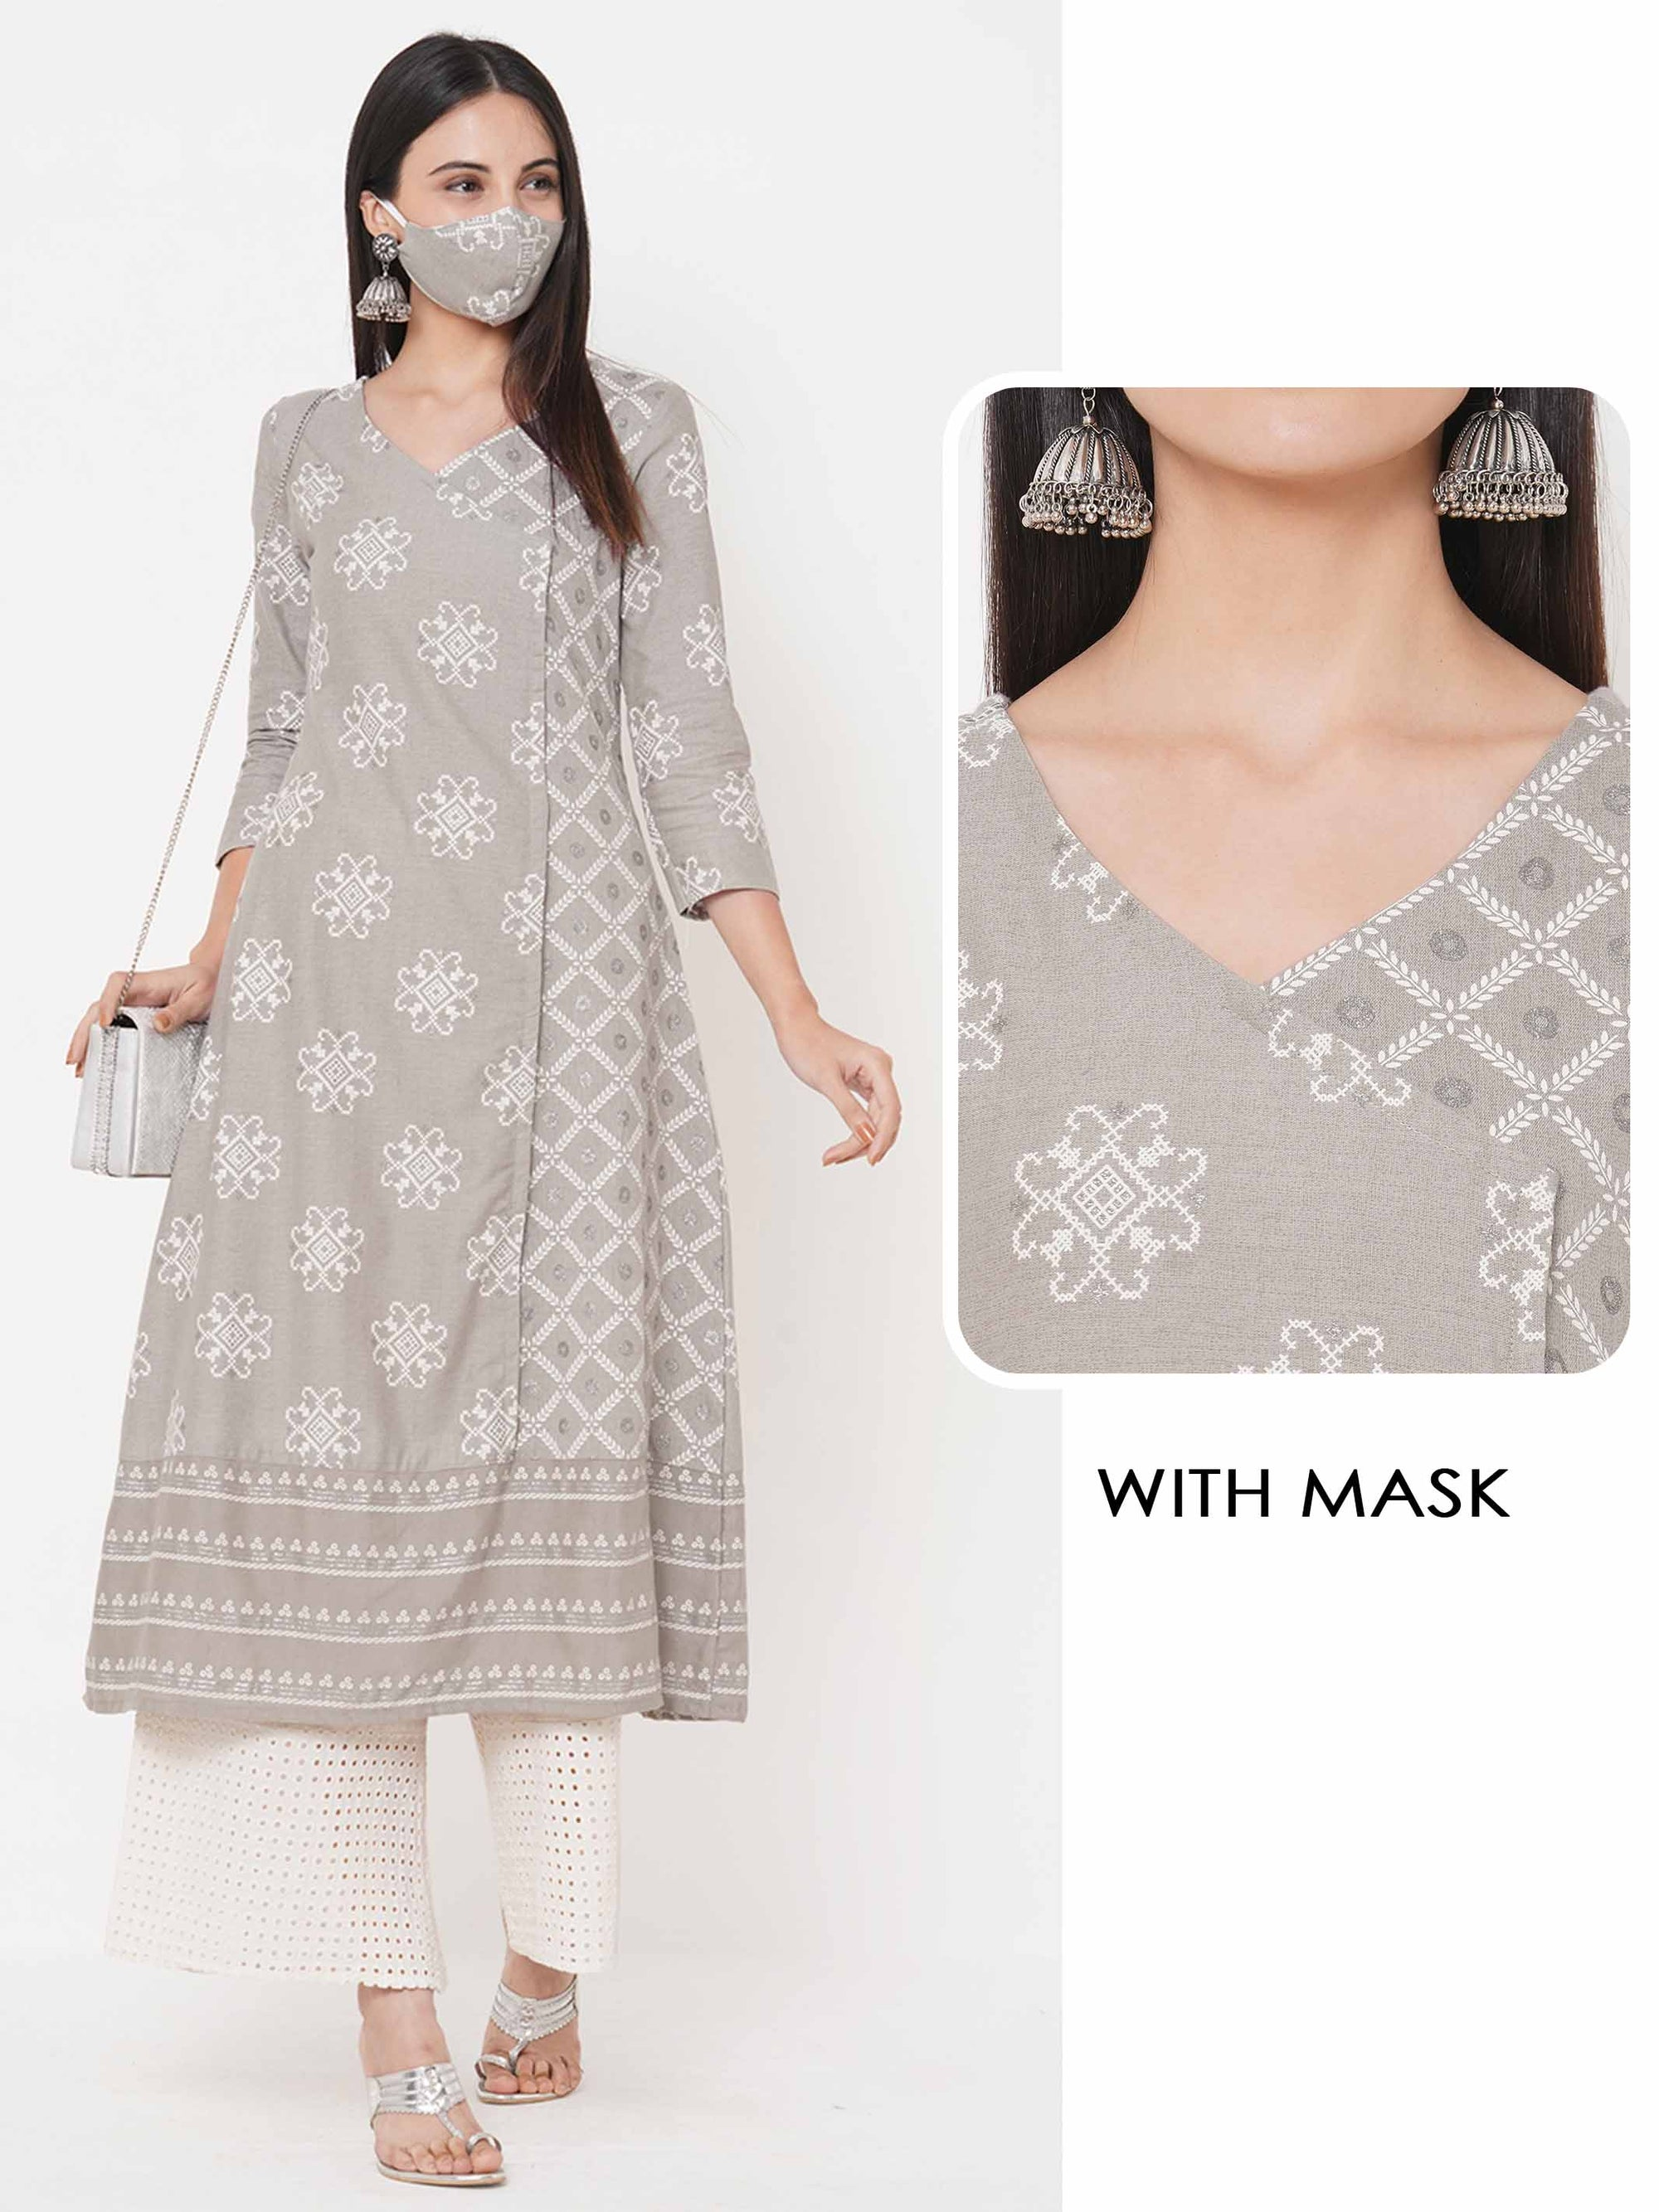 Ethnic Mix Printed Angarakha Style Kurta with Printed 2-Ply Mask – Grey